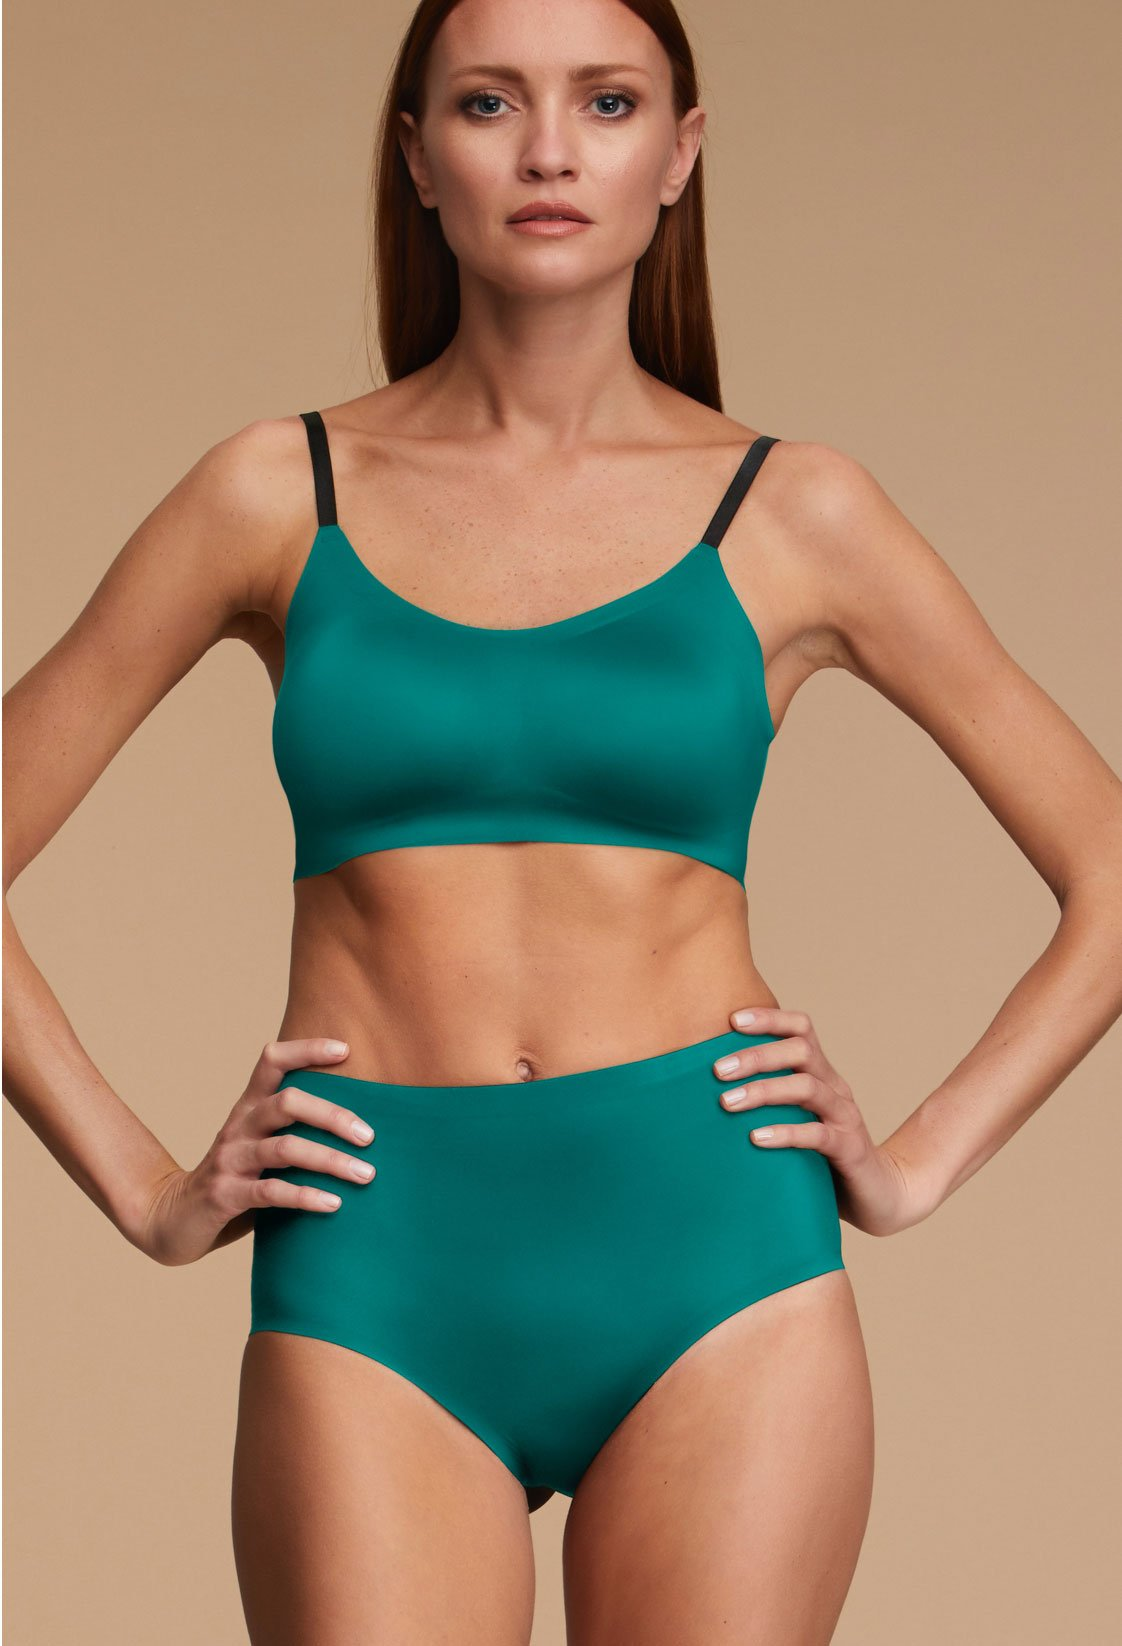 Woman Wearing EBY Green Lake High Waisted Underwear Missy Size Front View